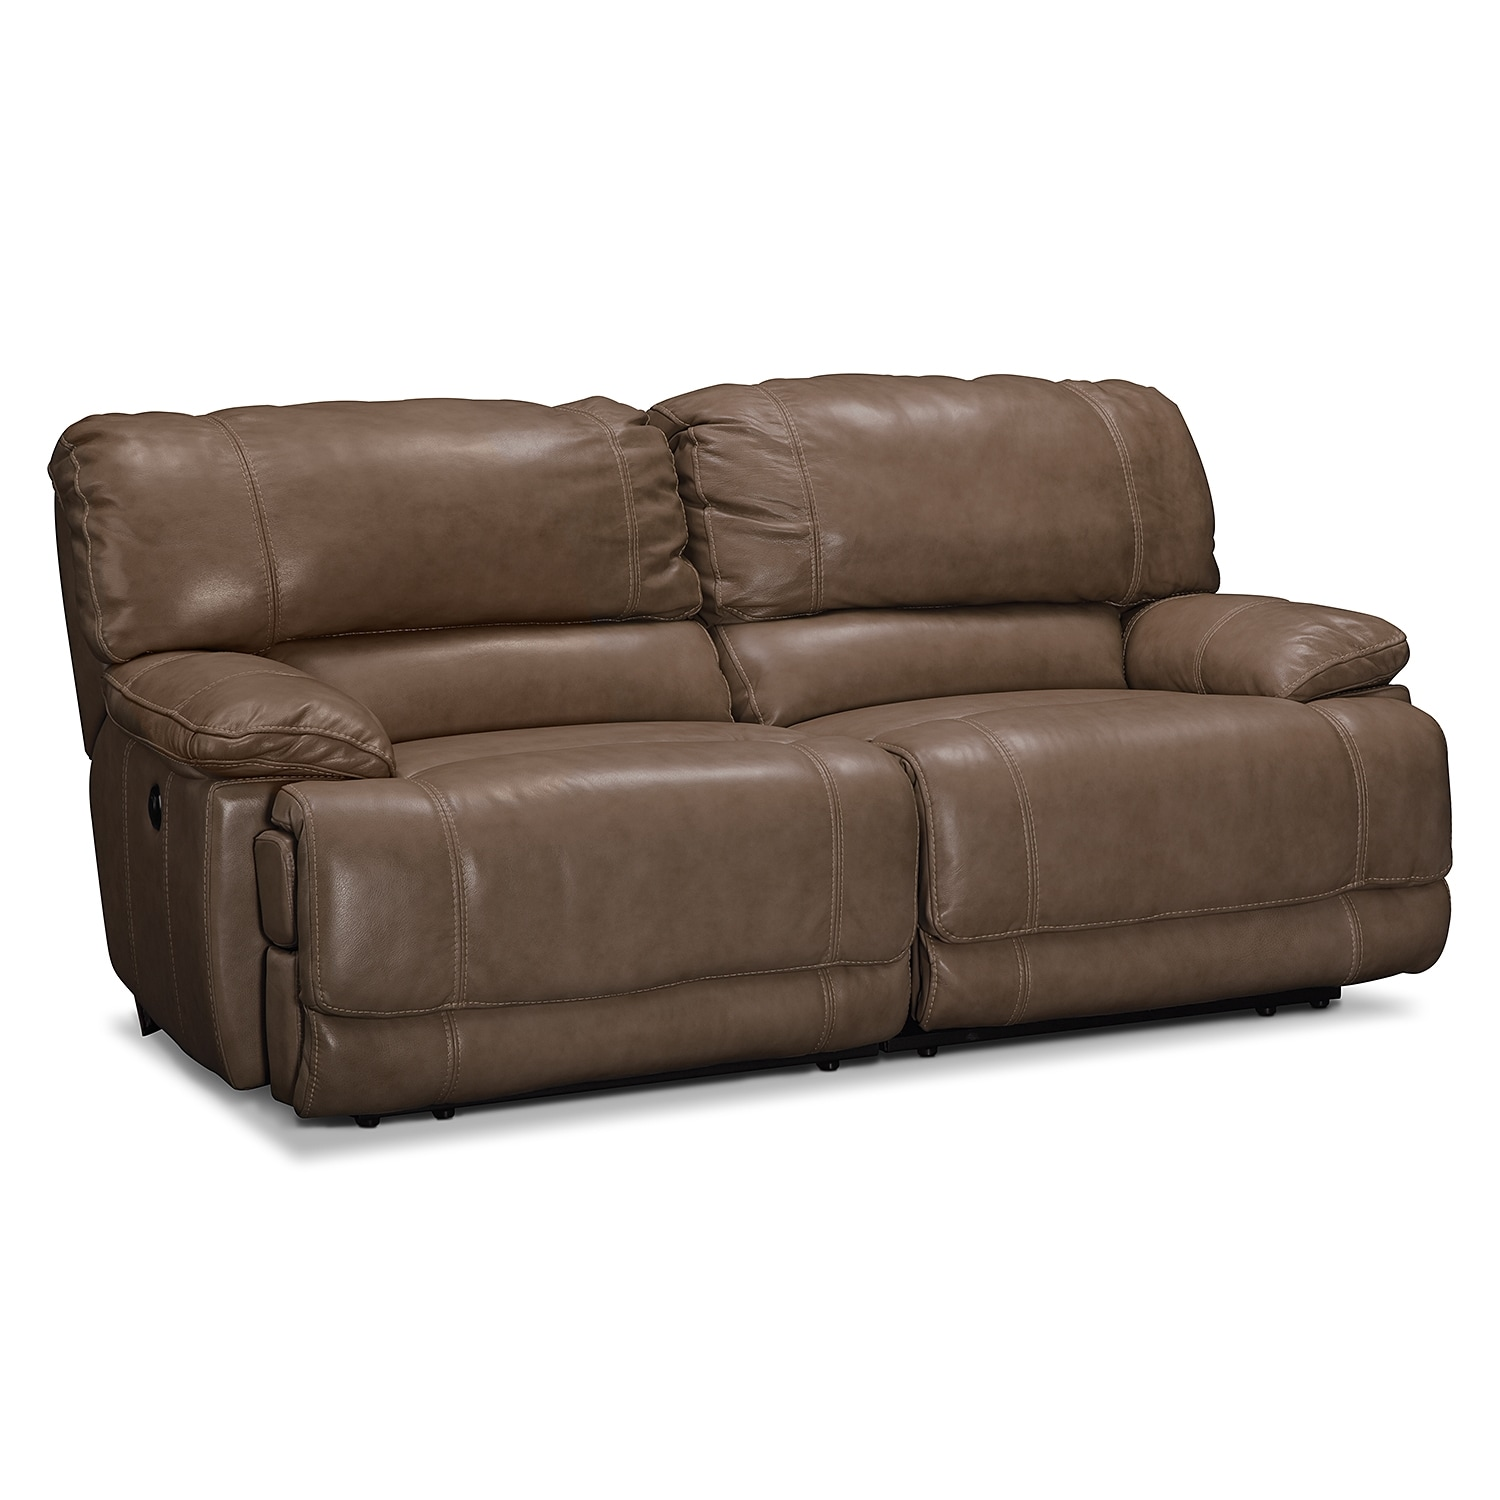 Living Room Furniture - St. Malo Power Reclining Sofa - Taupe